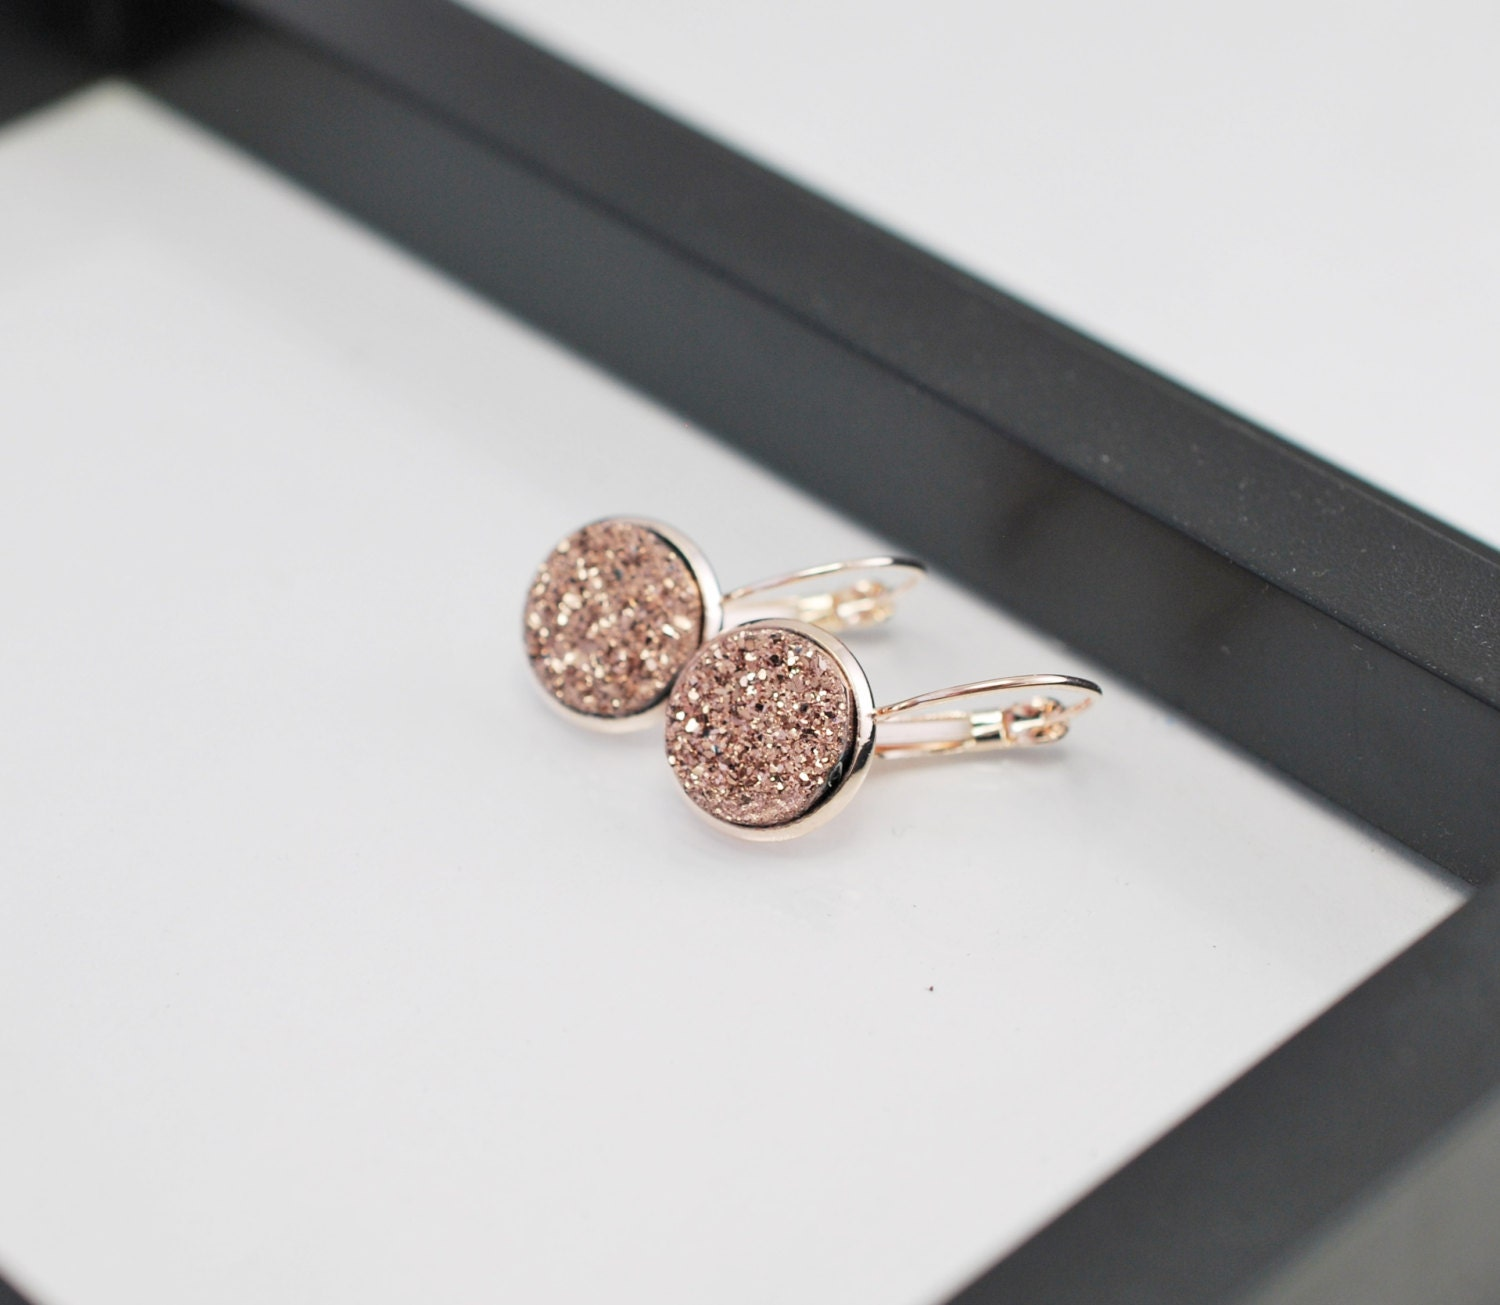 Rose Gold Druzy Earrings Druzy Earrings Rose Gold Earrings